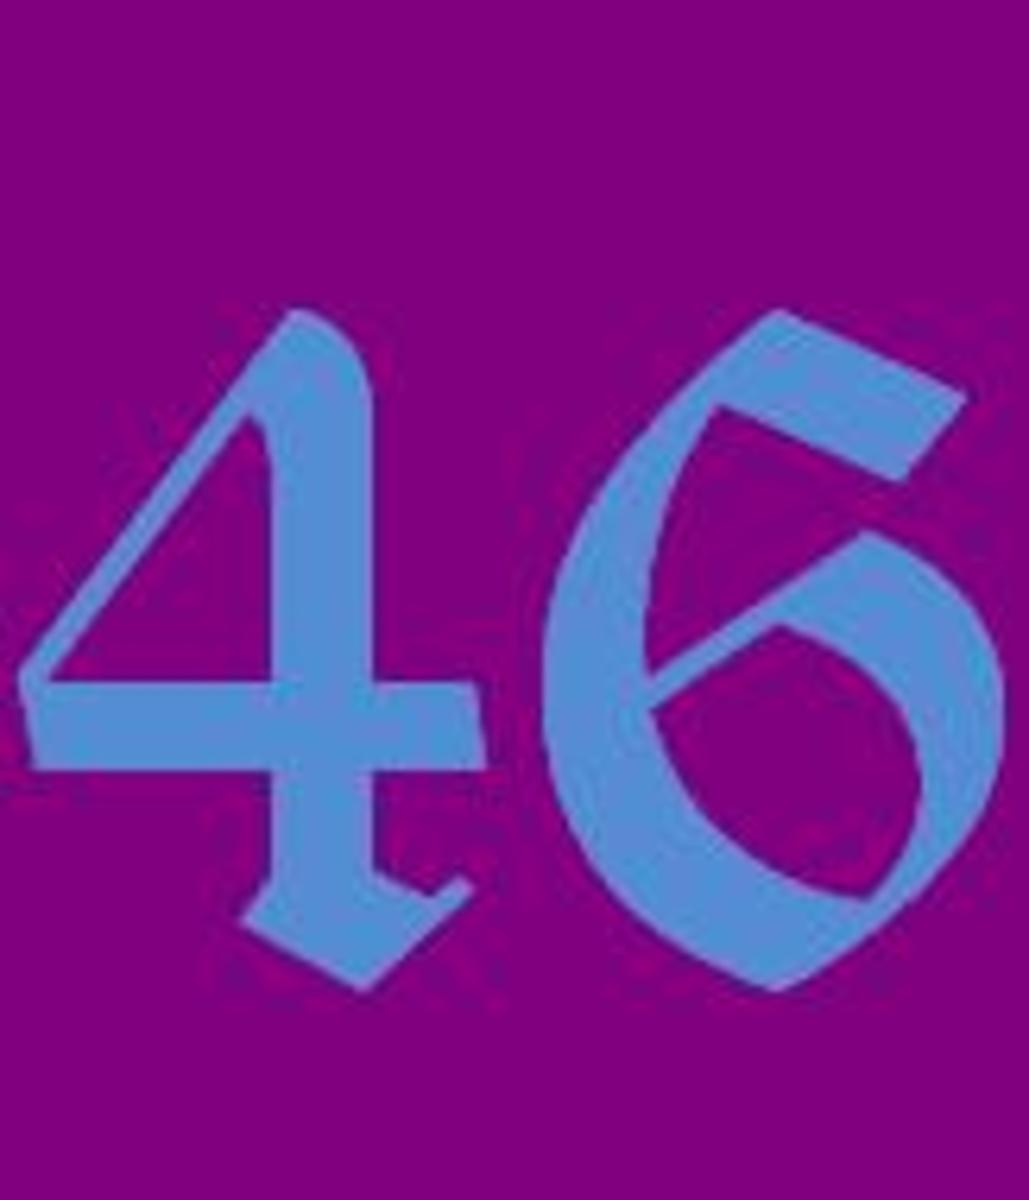 Math Facts Of The Number 46 And Other Fun Facts About Forty-Six.